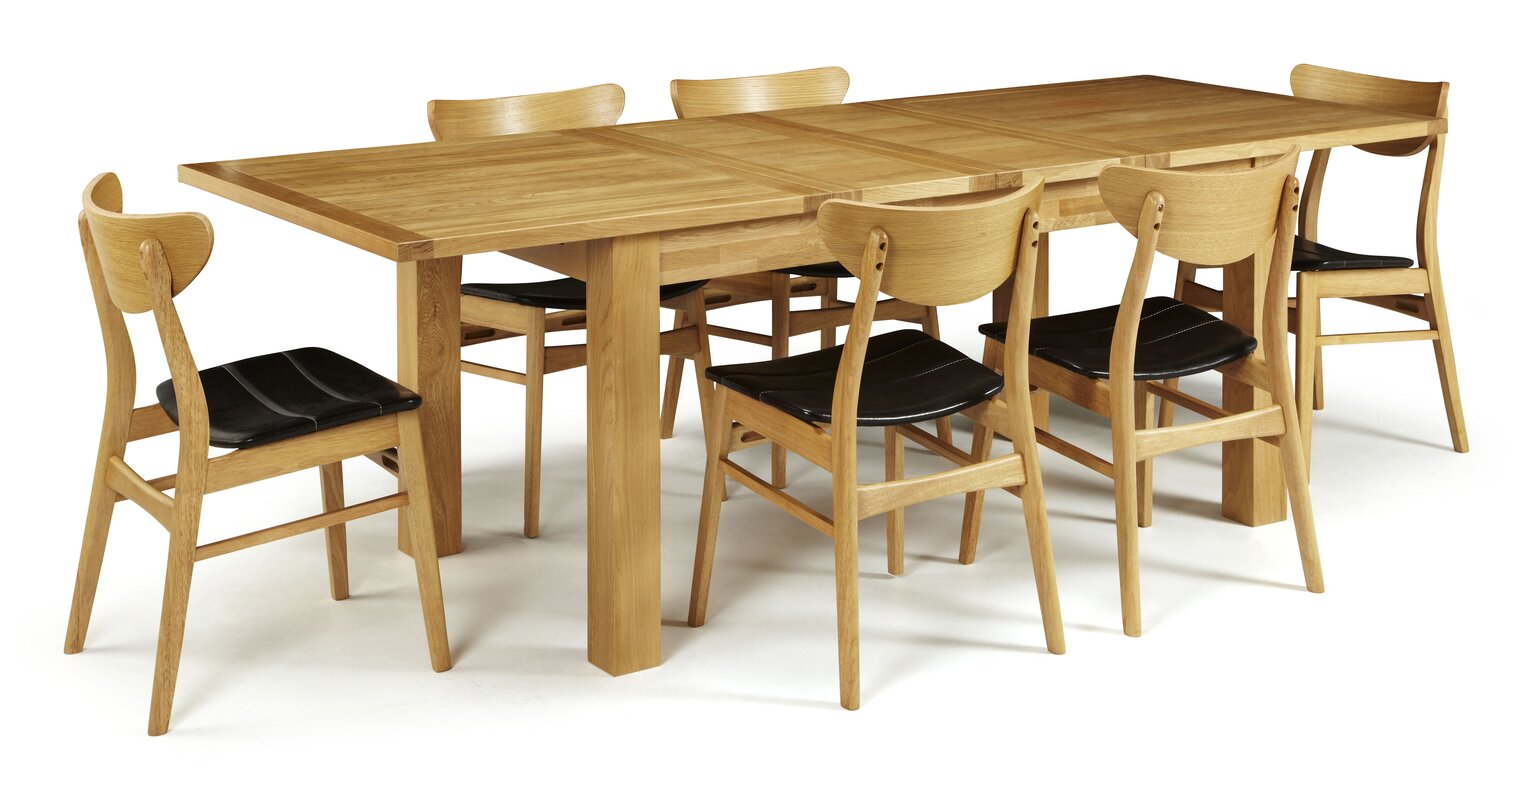 Home & Haus Mykonos Extendable Dining Table & Reviews